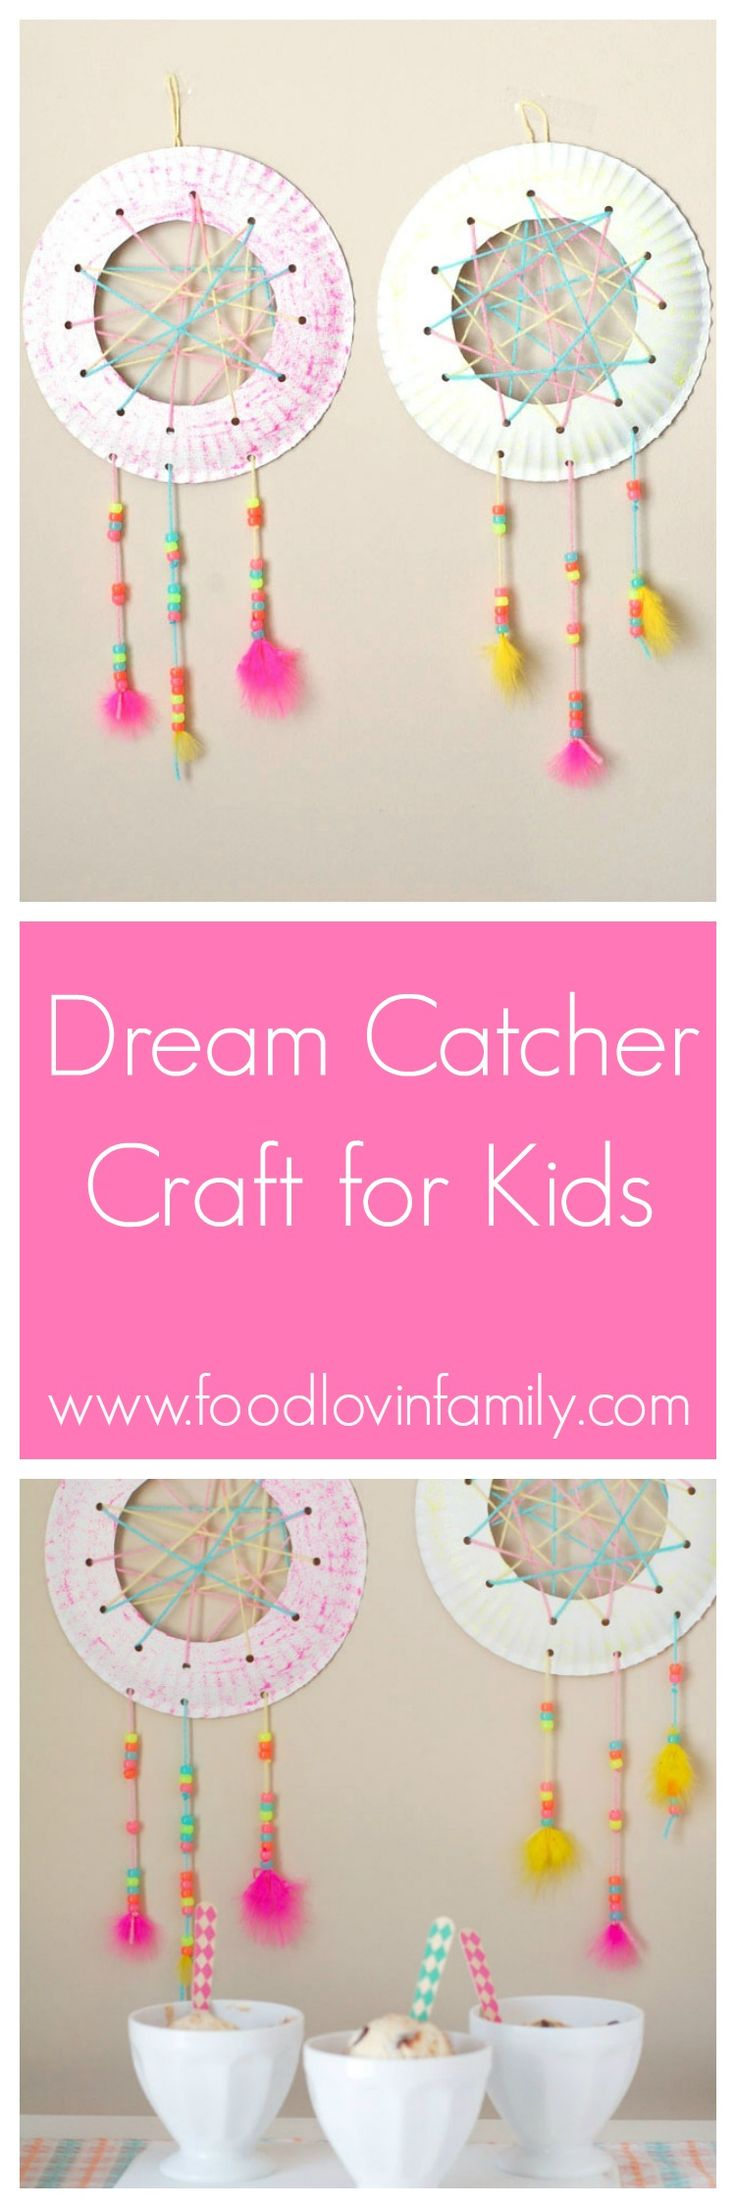 Dream Catcher Craft for Kids This dream catcher is sure to help your kids have the sweetest of dreams. #ad #SweeterTogether | http://www.foodlovinfamily.com/dream-catcher-craft-kids/